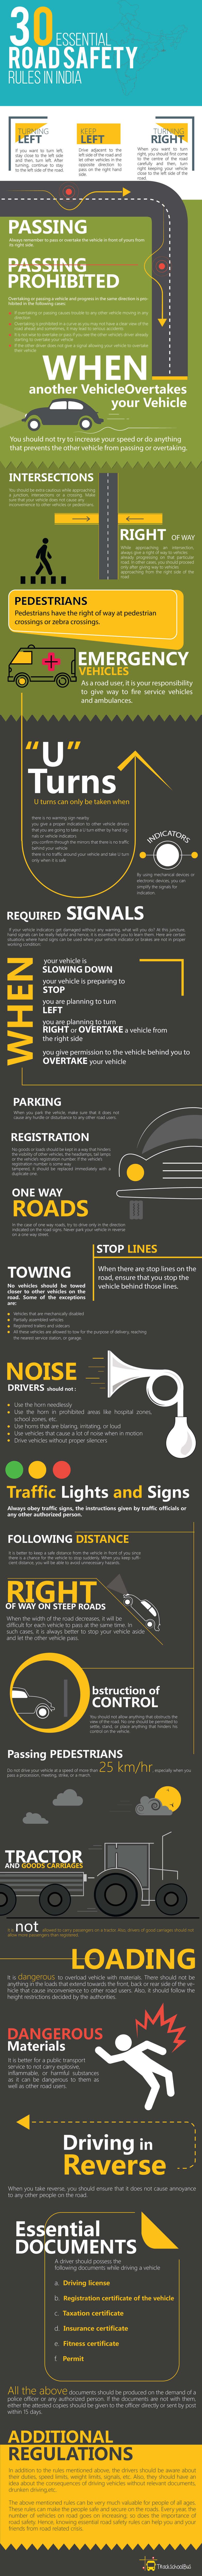 30-Essential-Road-Safety-Rules-in-India-infographic-plaza